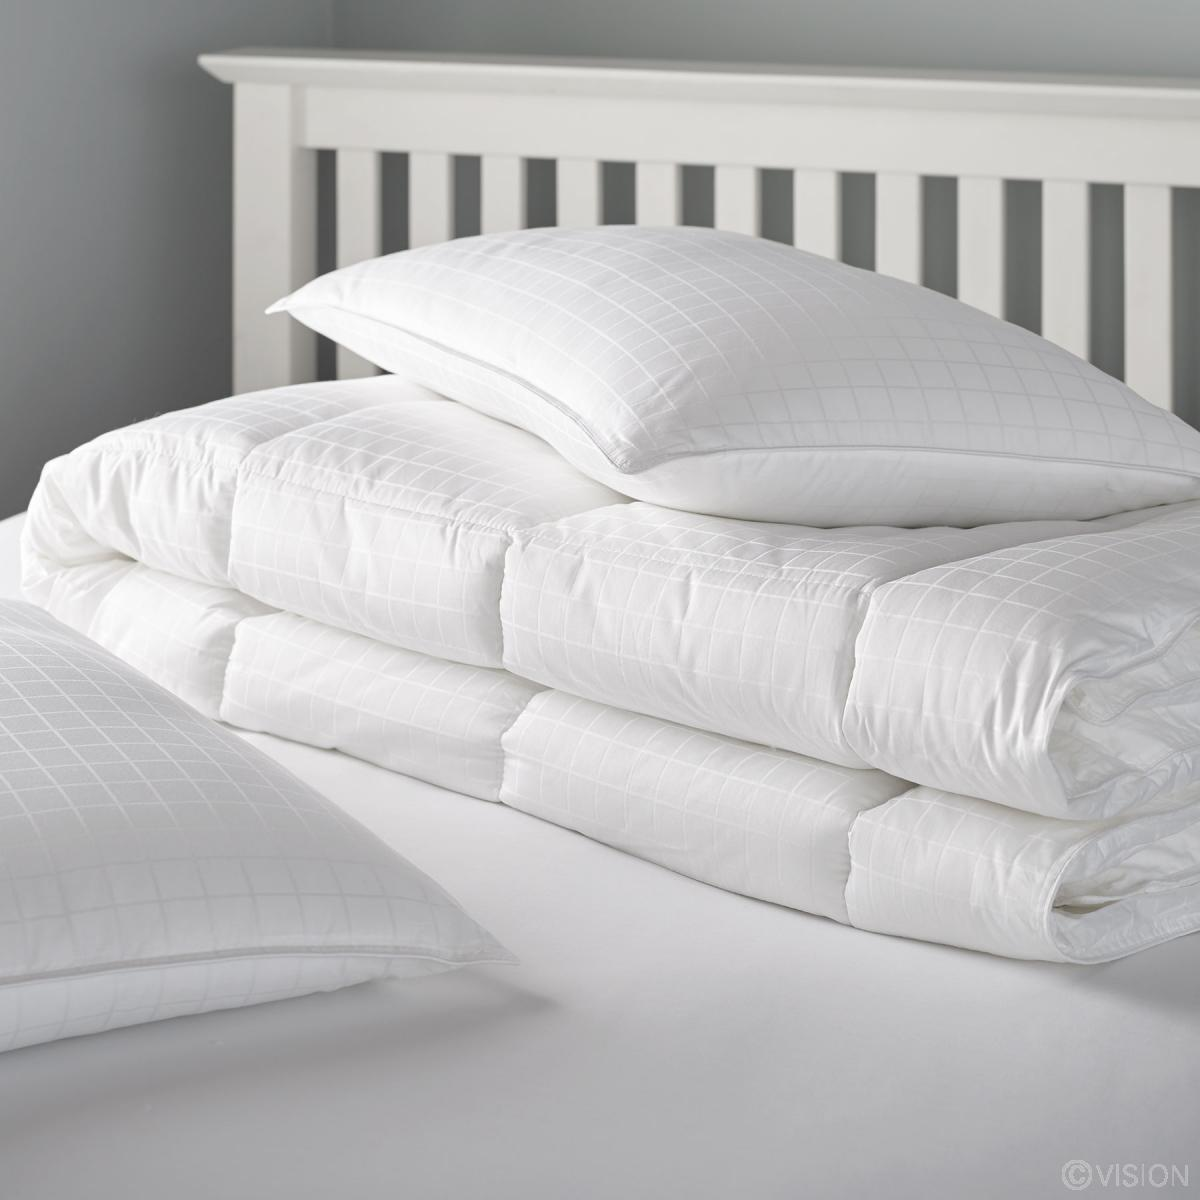 comforters twin blanket king and any make doona european full goose down home queen quilt in weight item duvets size or comforter from duvet